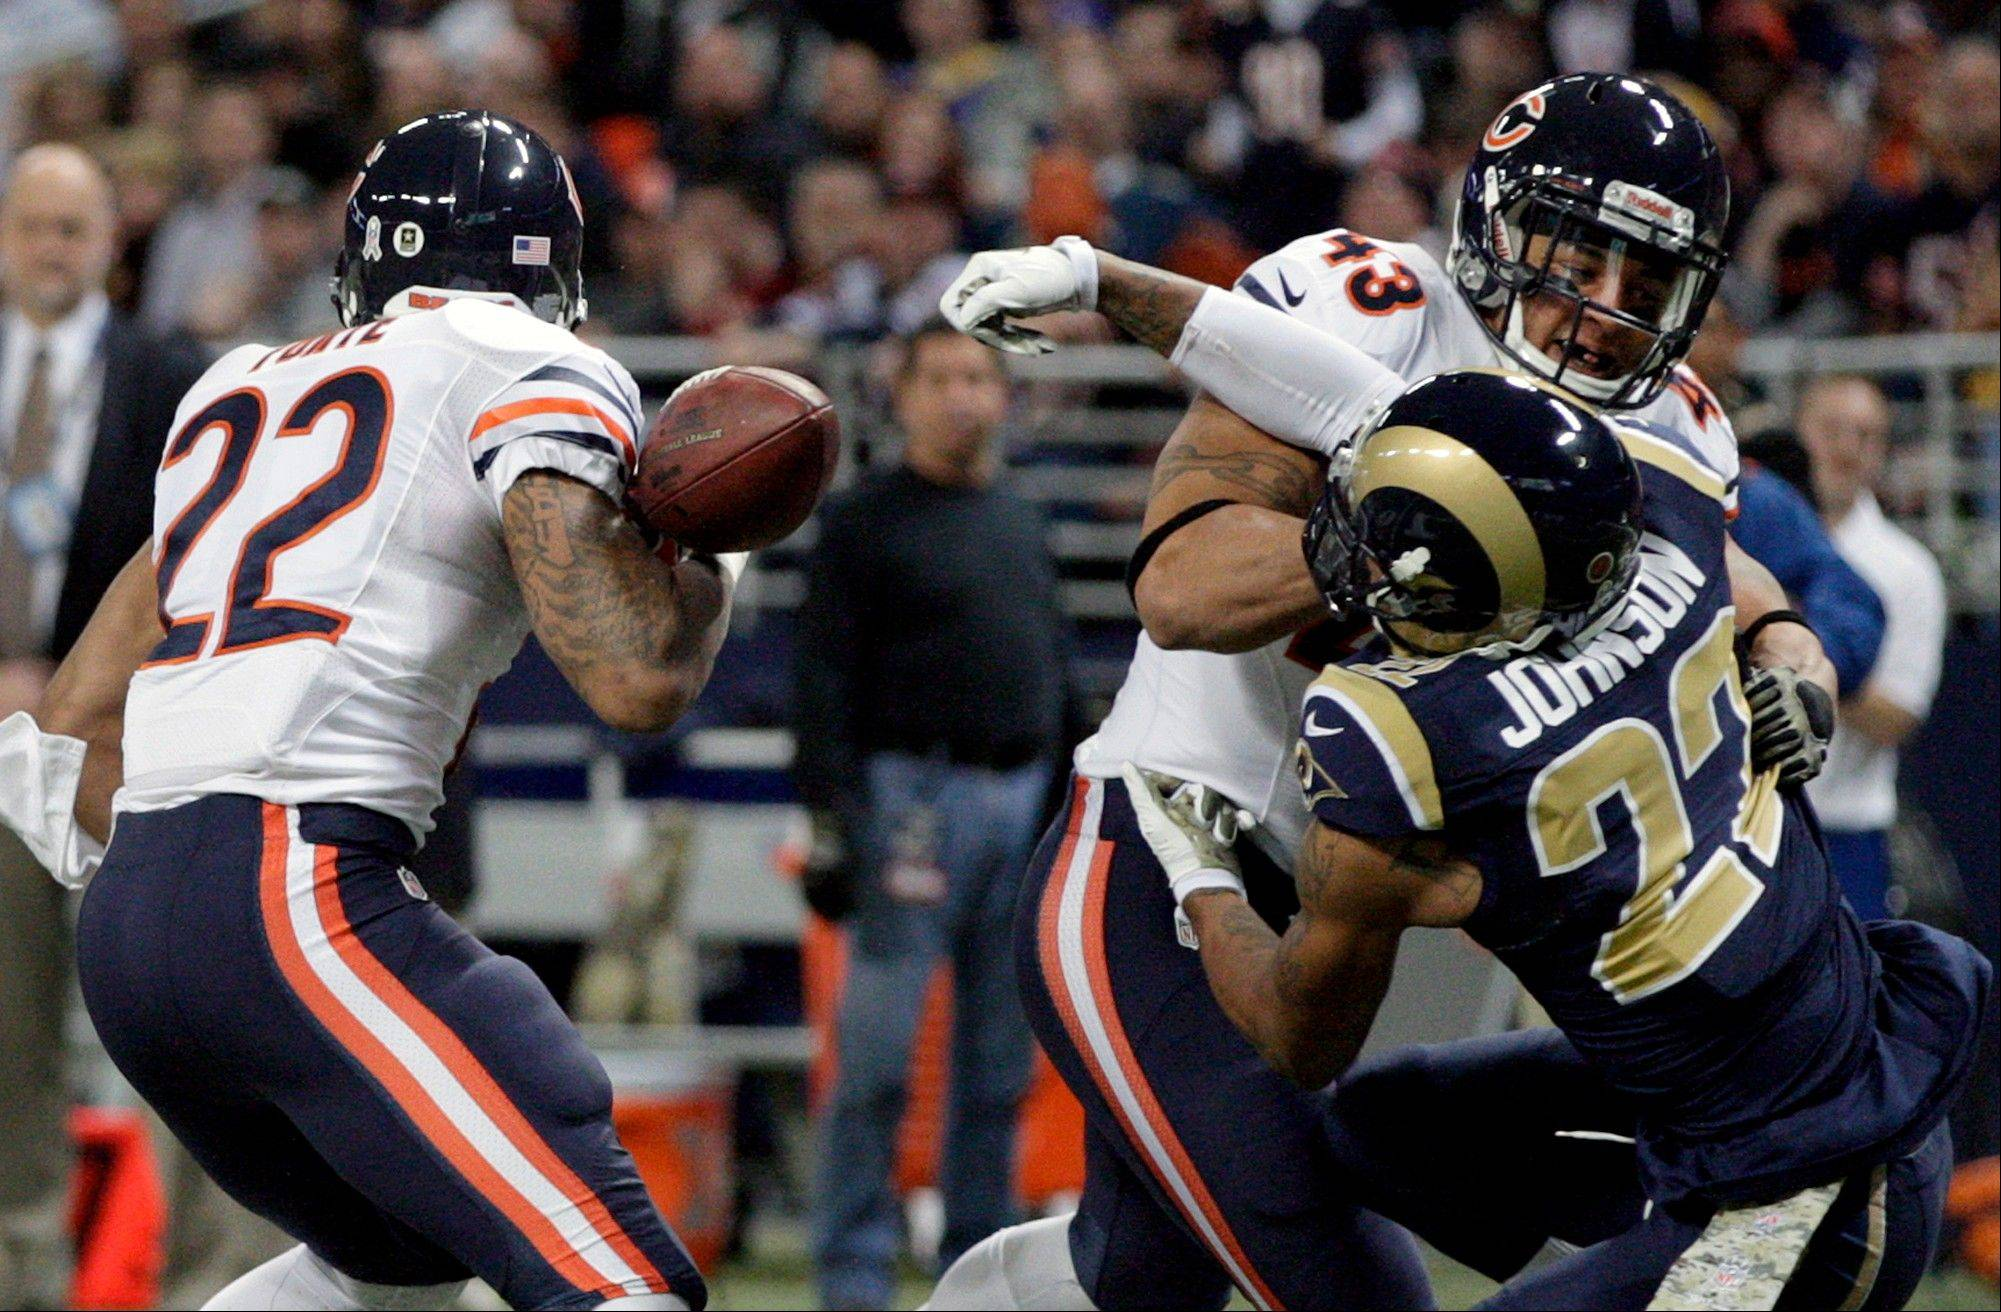 St. Louis Rams cornerback Trumaine Johnson, right, forces Chicago Bears running back Matt Forte, left, to fumble as Bears fullback Tony Fiammetta (43) watches during the first quarter. The Rams' James Laurinaitis recovered the fumble.